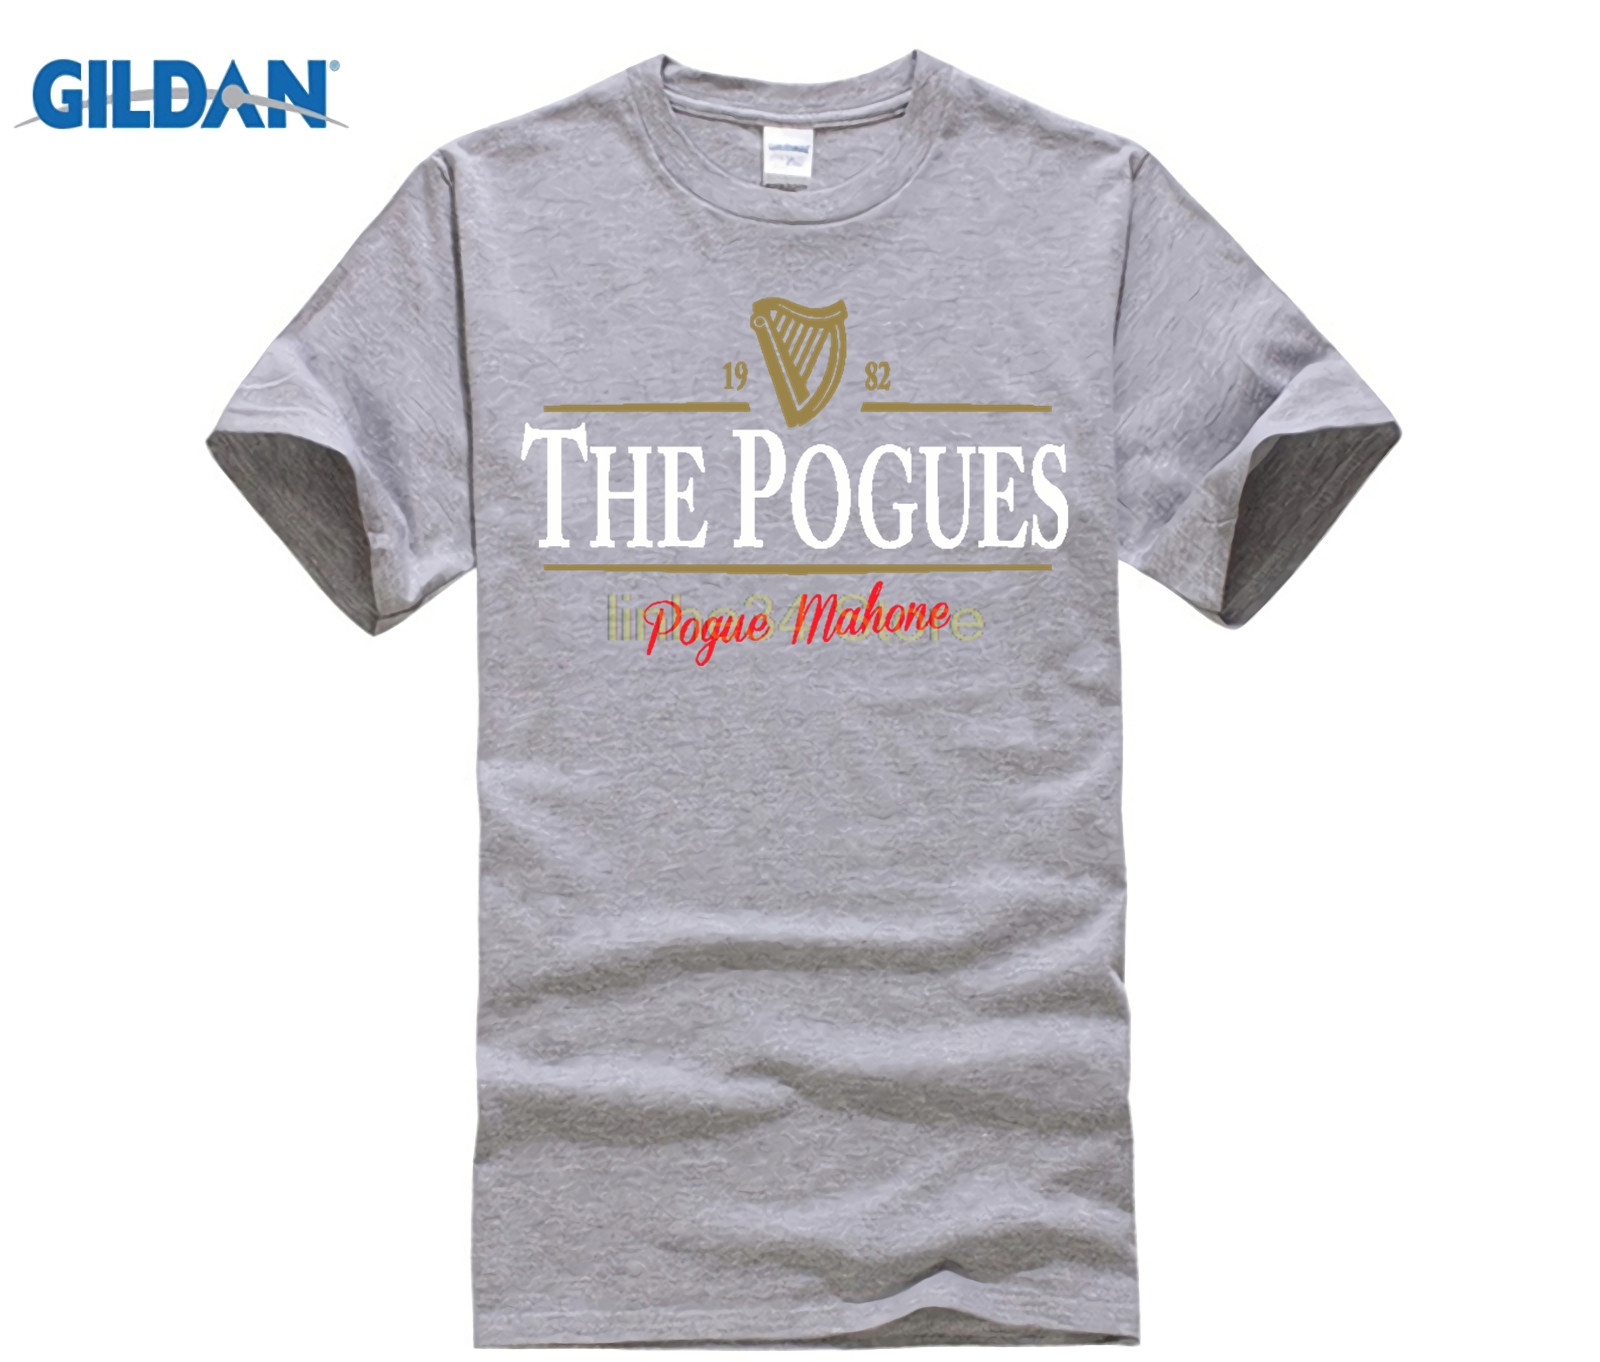 THE POGUES GUINNESS MASH-UP T SHIRT Irish Stout Punk Music Parody tee shirt